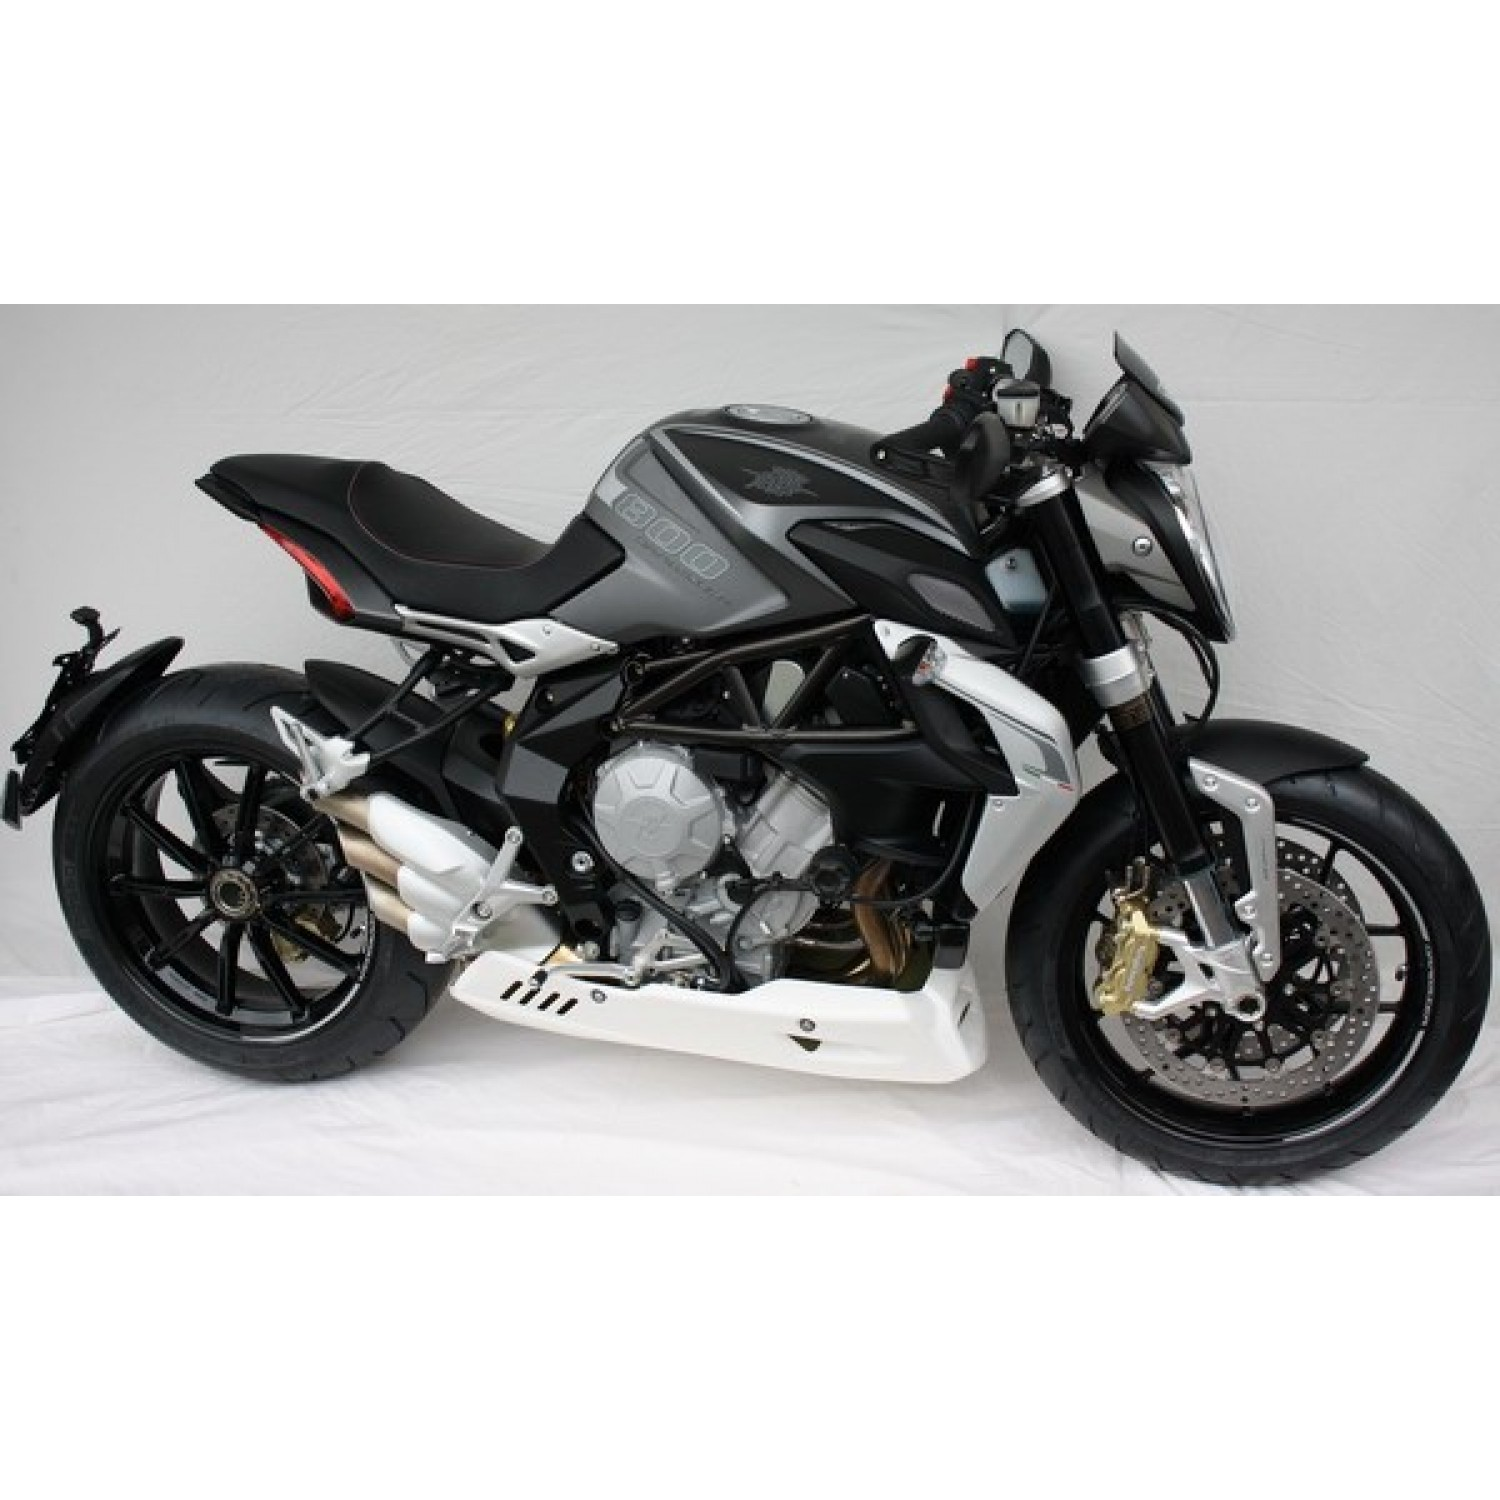 kit protection roue avant dragster 800 mv agusta krax moto. Black Bedroom Furniture Sets. Home Design Ideas